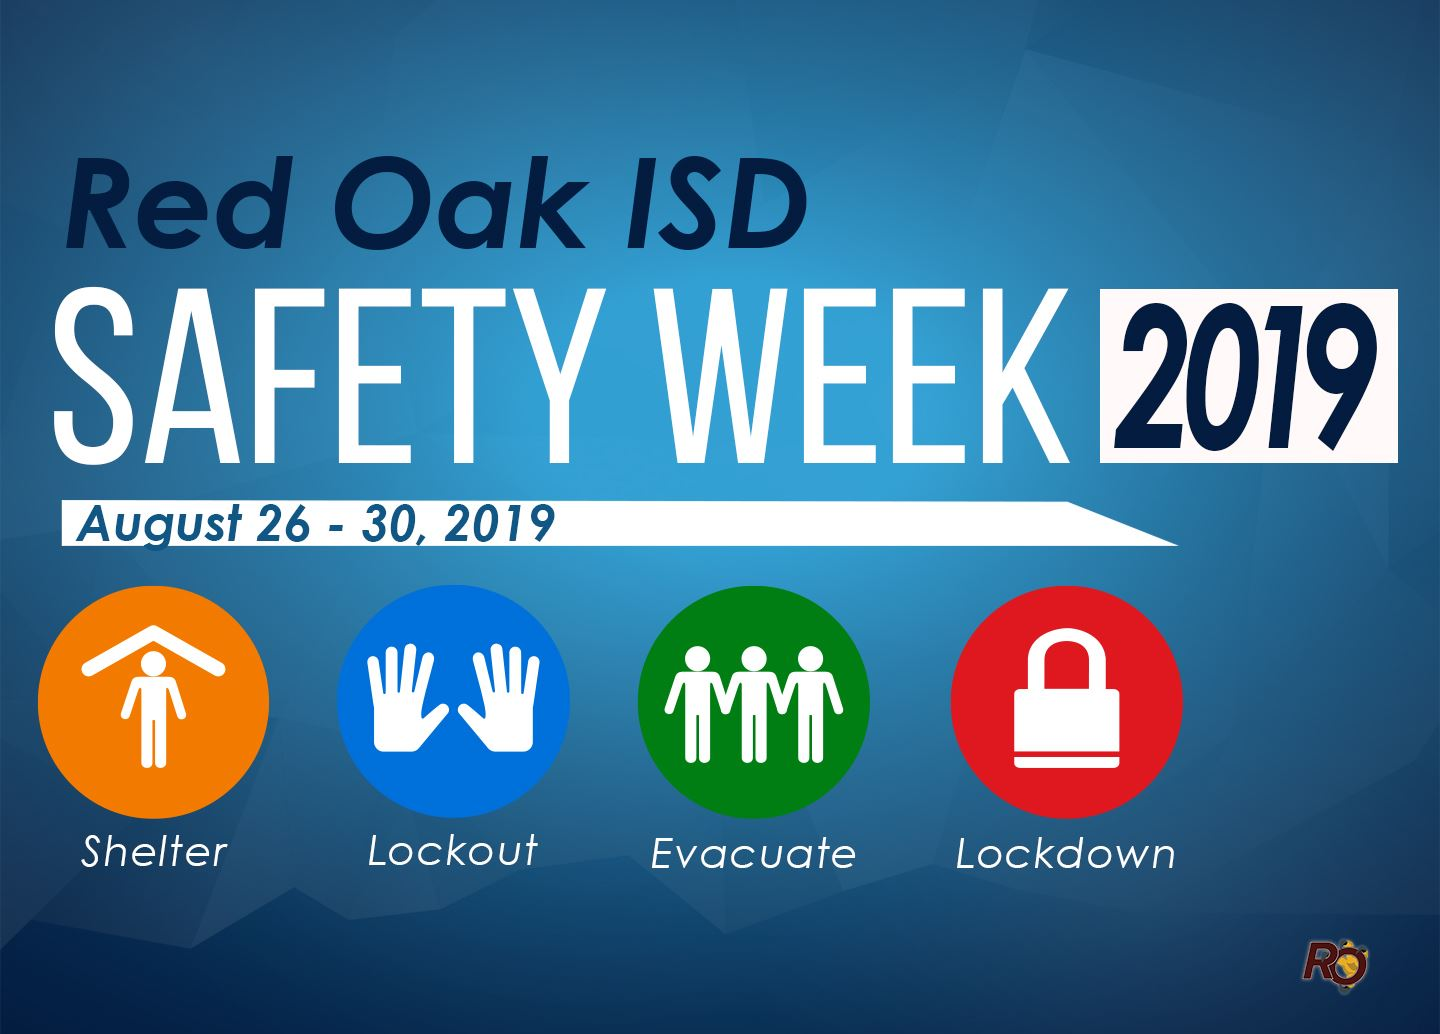 ROISD Safety Week  on Aug. 26-30. Students will practice shelter, lockout, evacuate, & lockdown